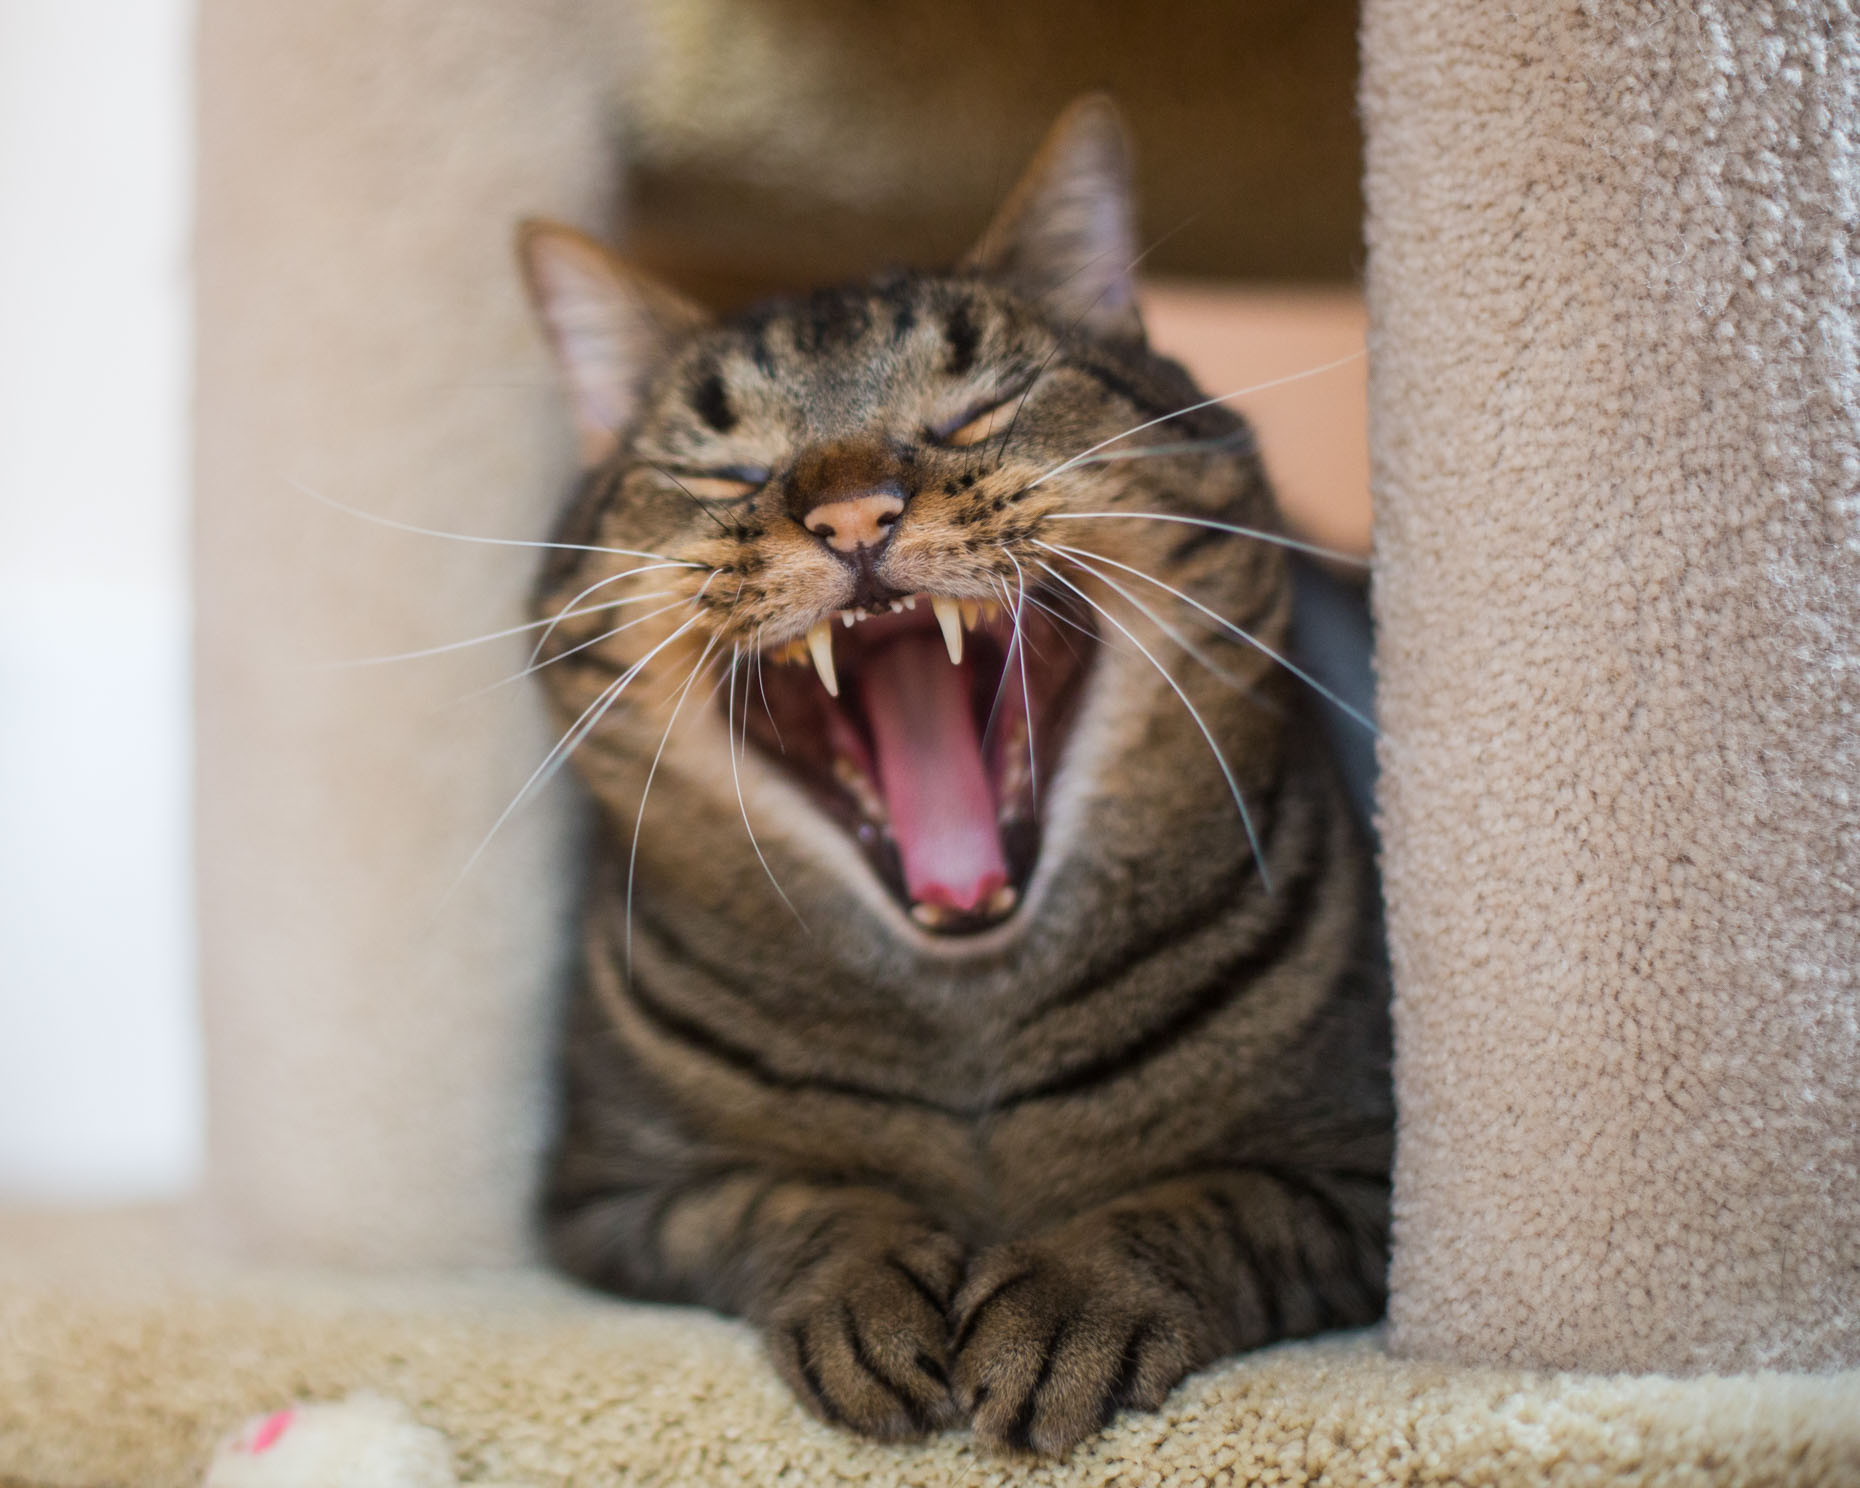 Cat and Pet Photography | Tabby Cat Yawning by Mark Rogers